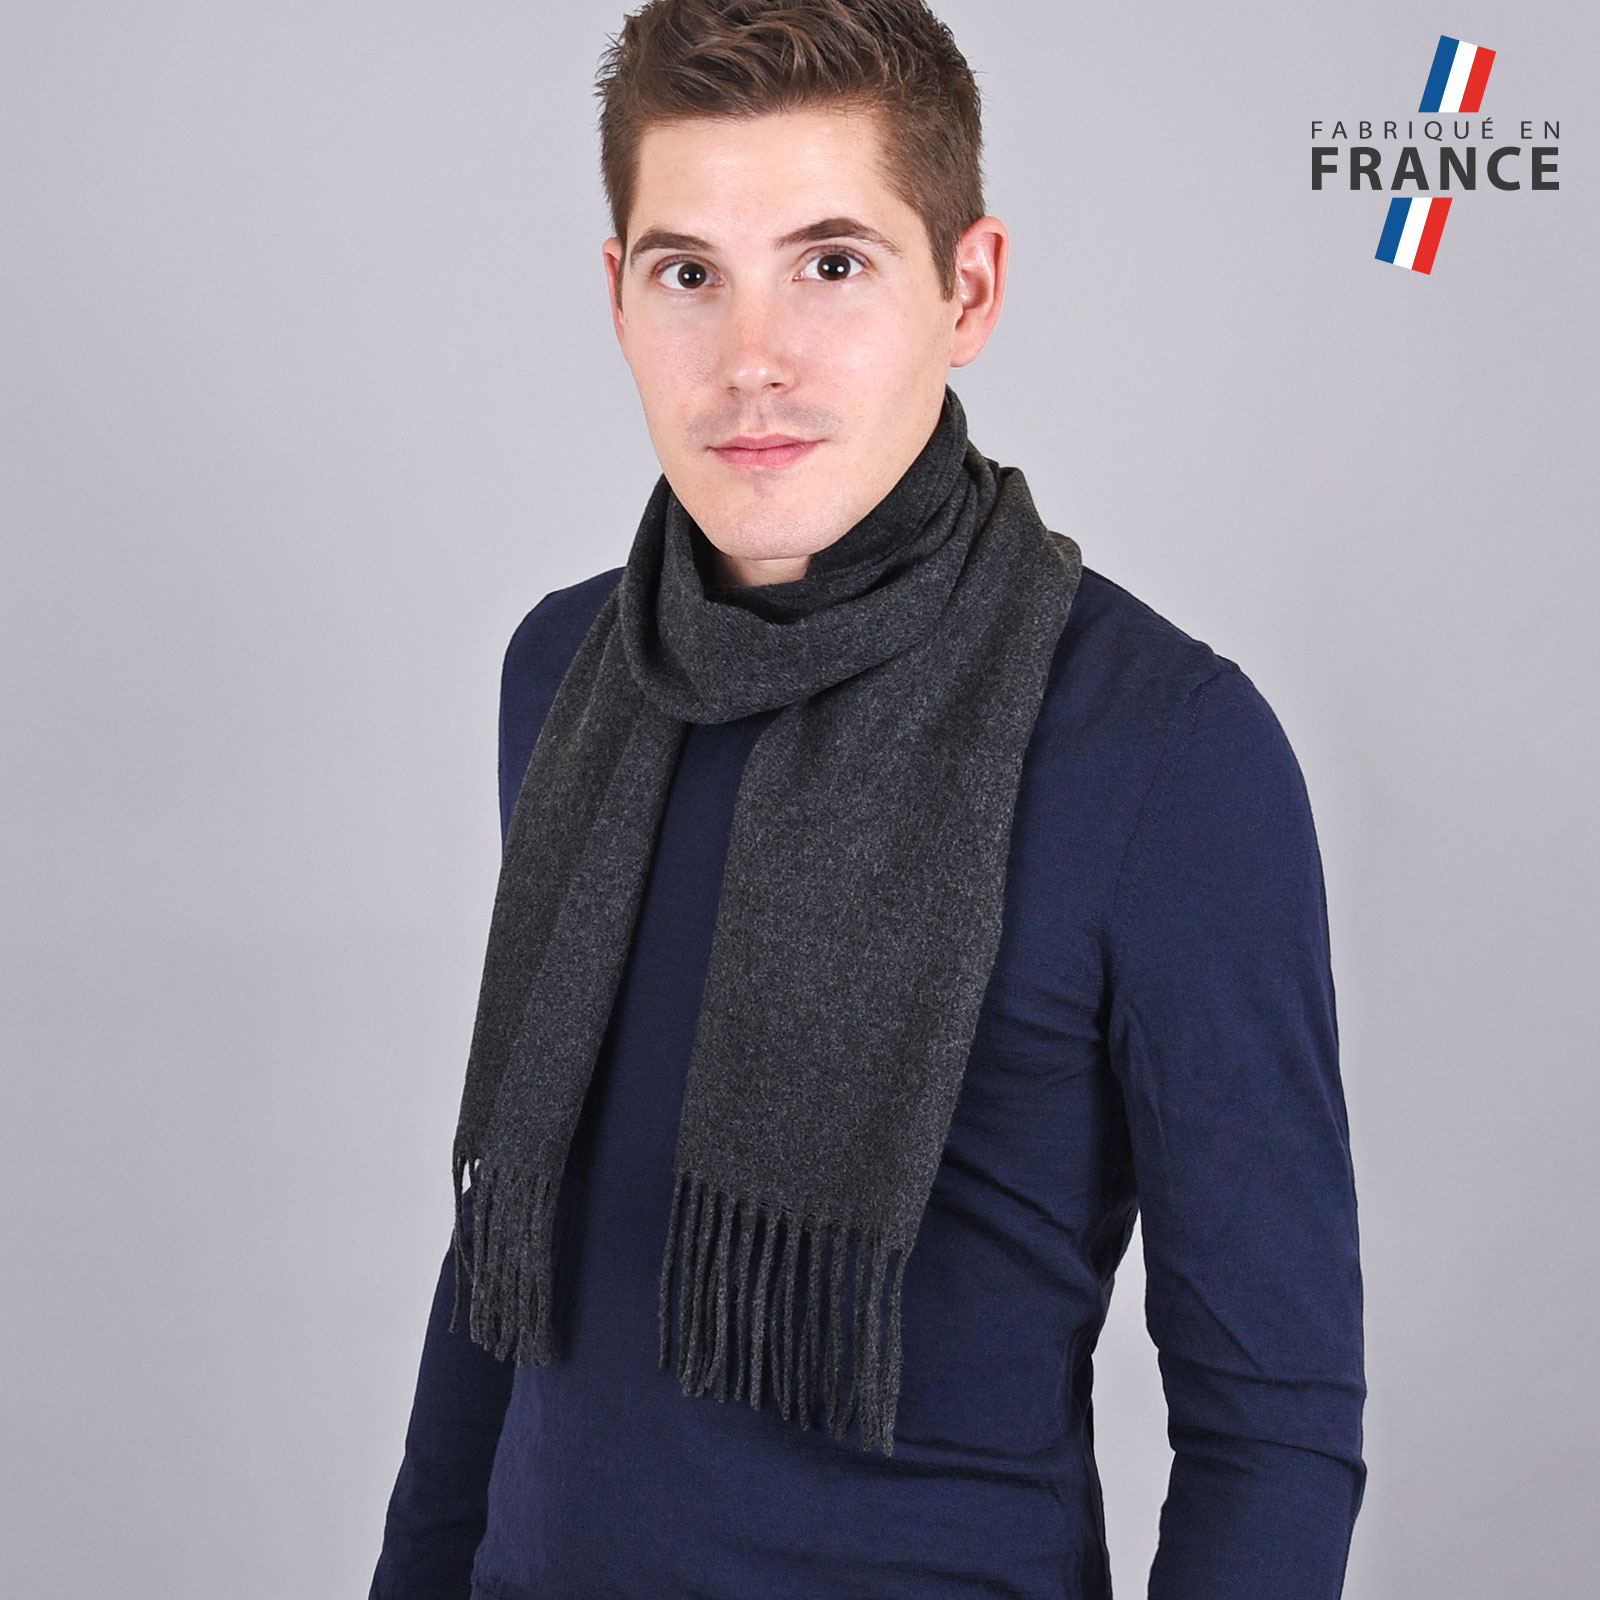 AT-03245-VH16-LB_FR-echarpe-homme-a-franges-gris-anthracite-fabrication-francaise